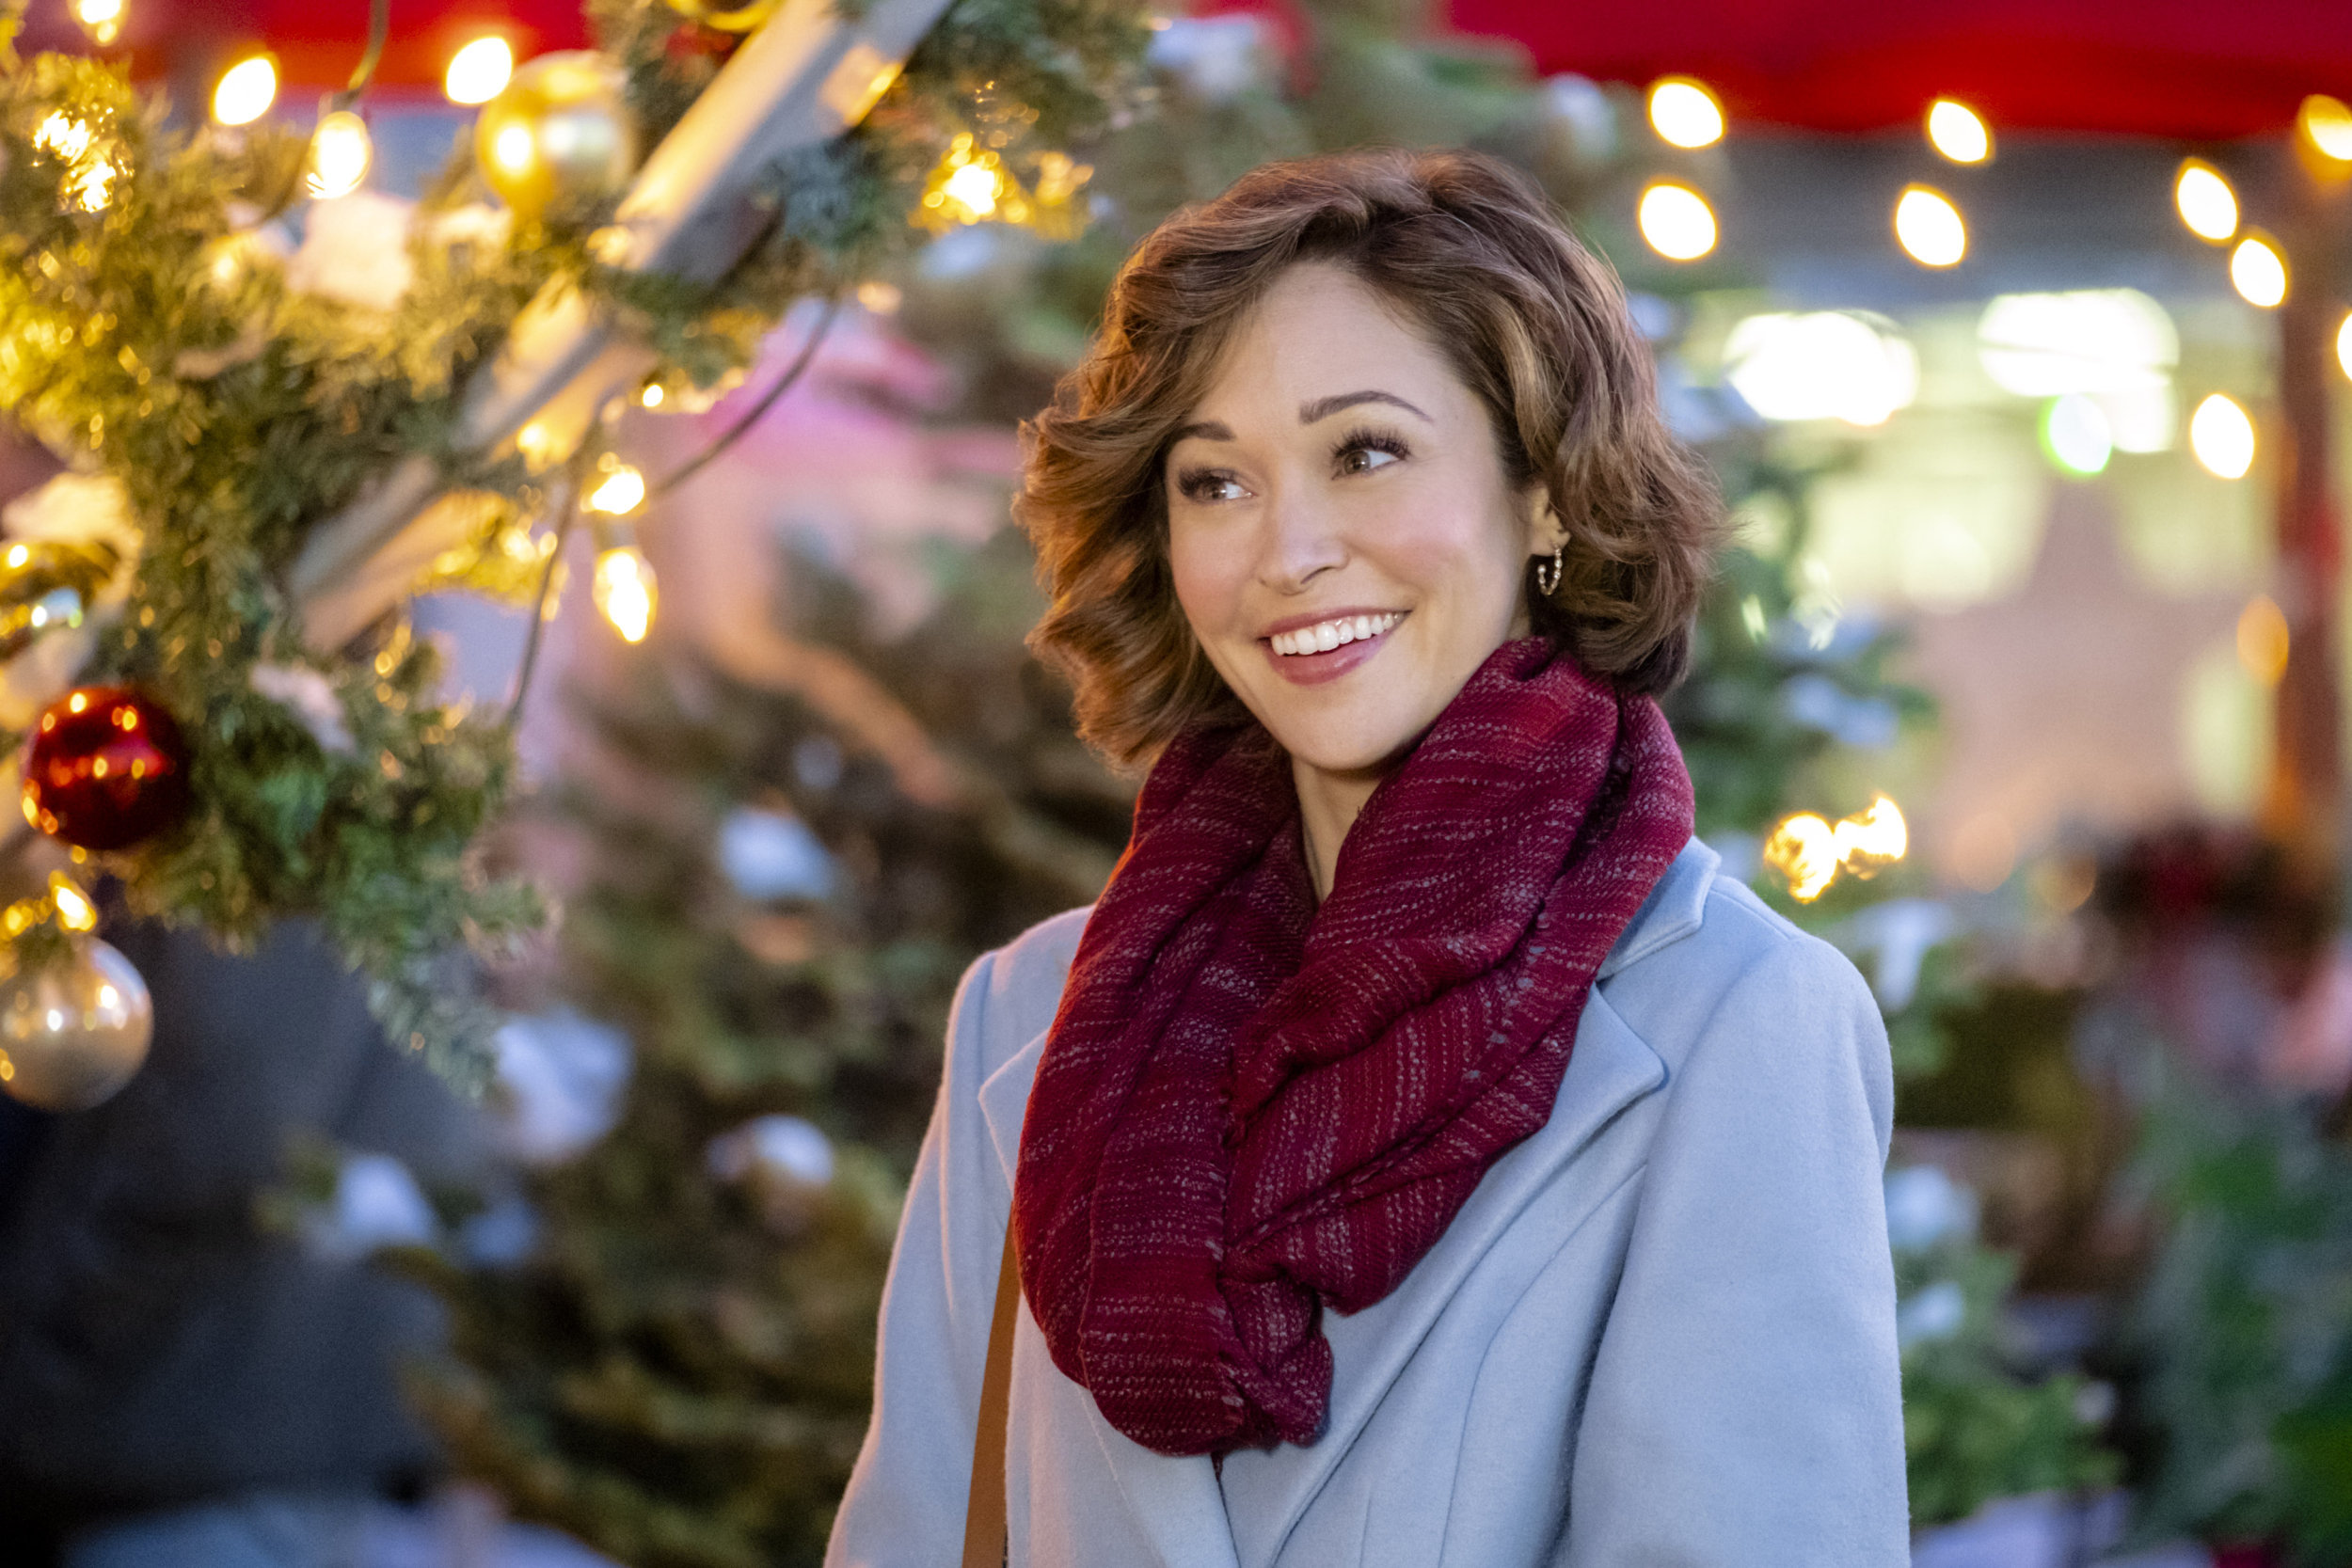 Christmas Under The Stars 2020 Where Was Christmas Under the Stars Filmed? Hallmark Cast Details